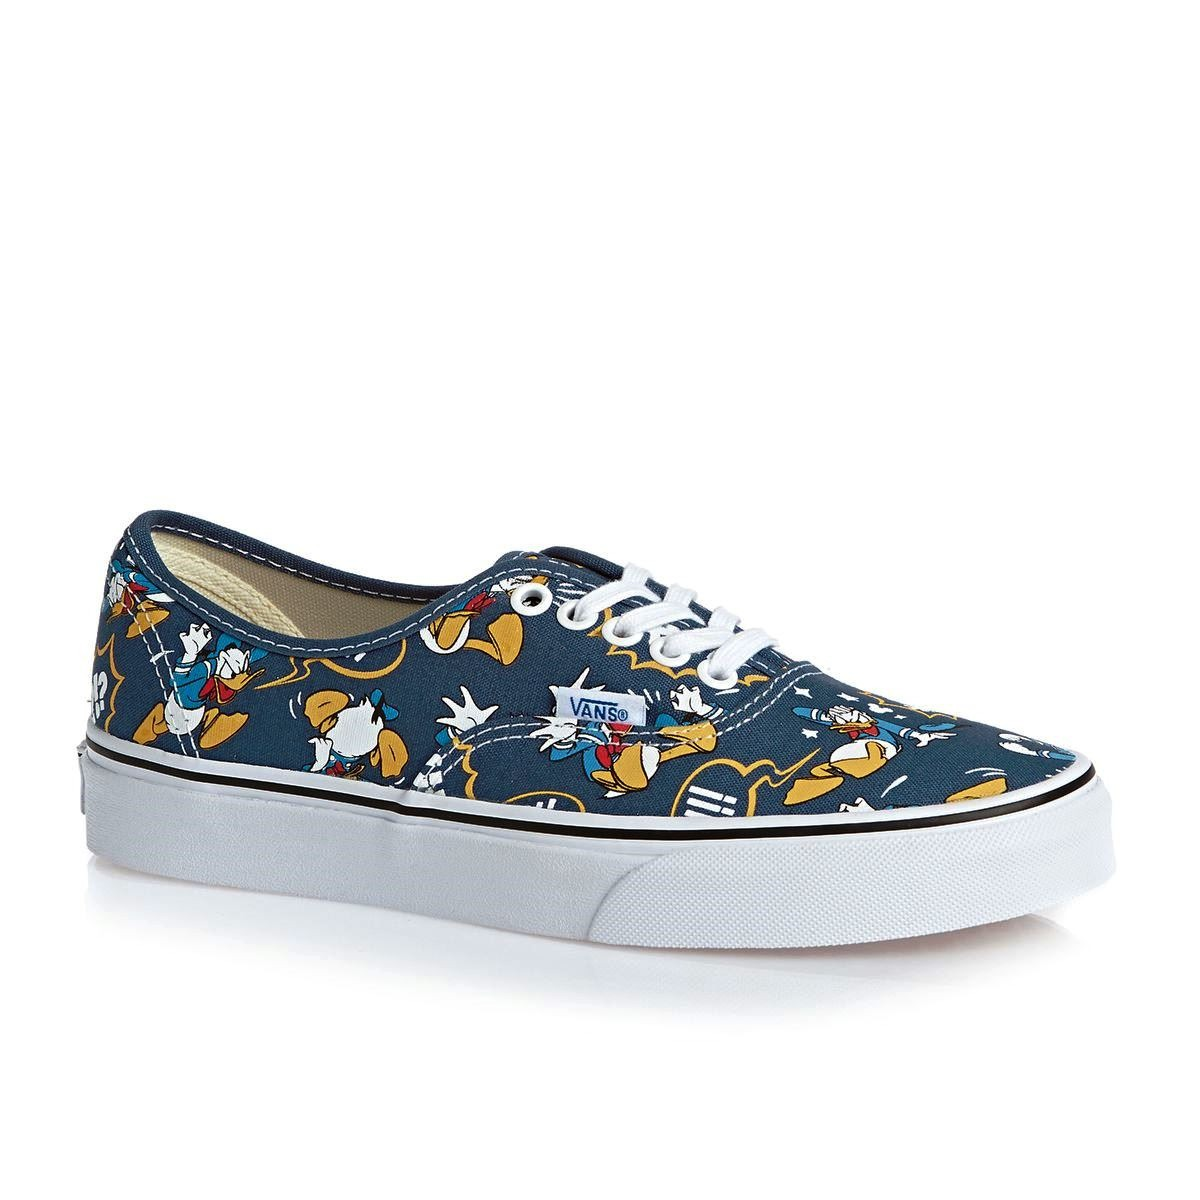 Tenis vans disney donald duck navy nuevo original cargando zoom jpg  1200x1200 Disney donald duck navy bdfc13984a8